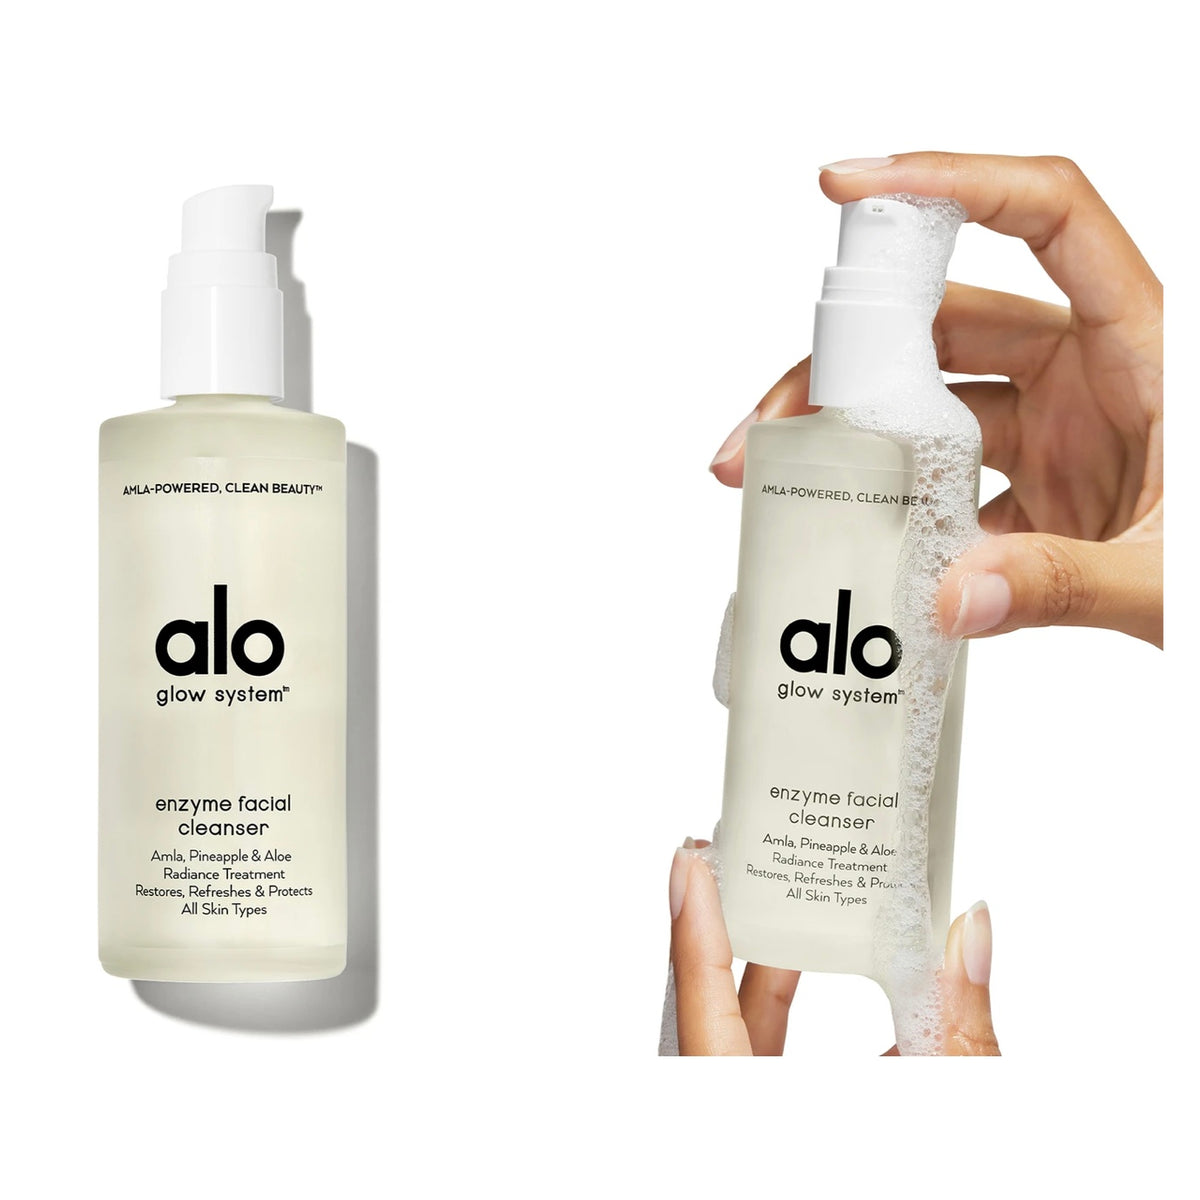 Alo Enzyme Facial Cleanser